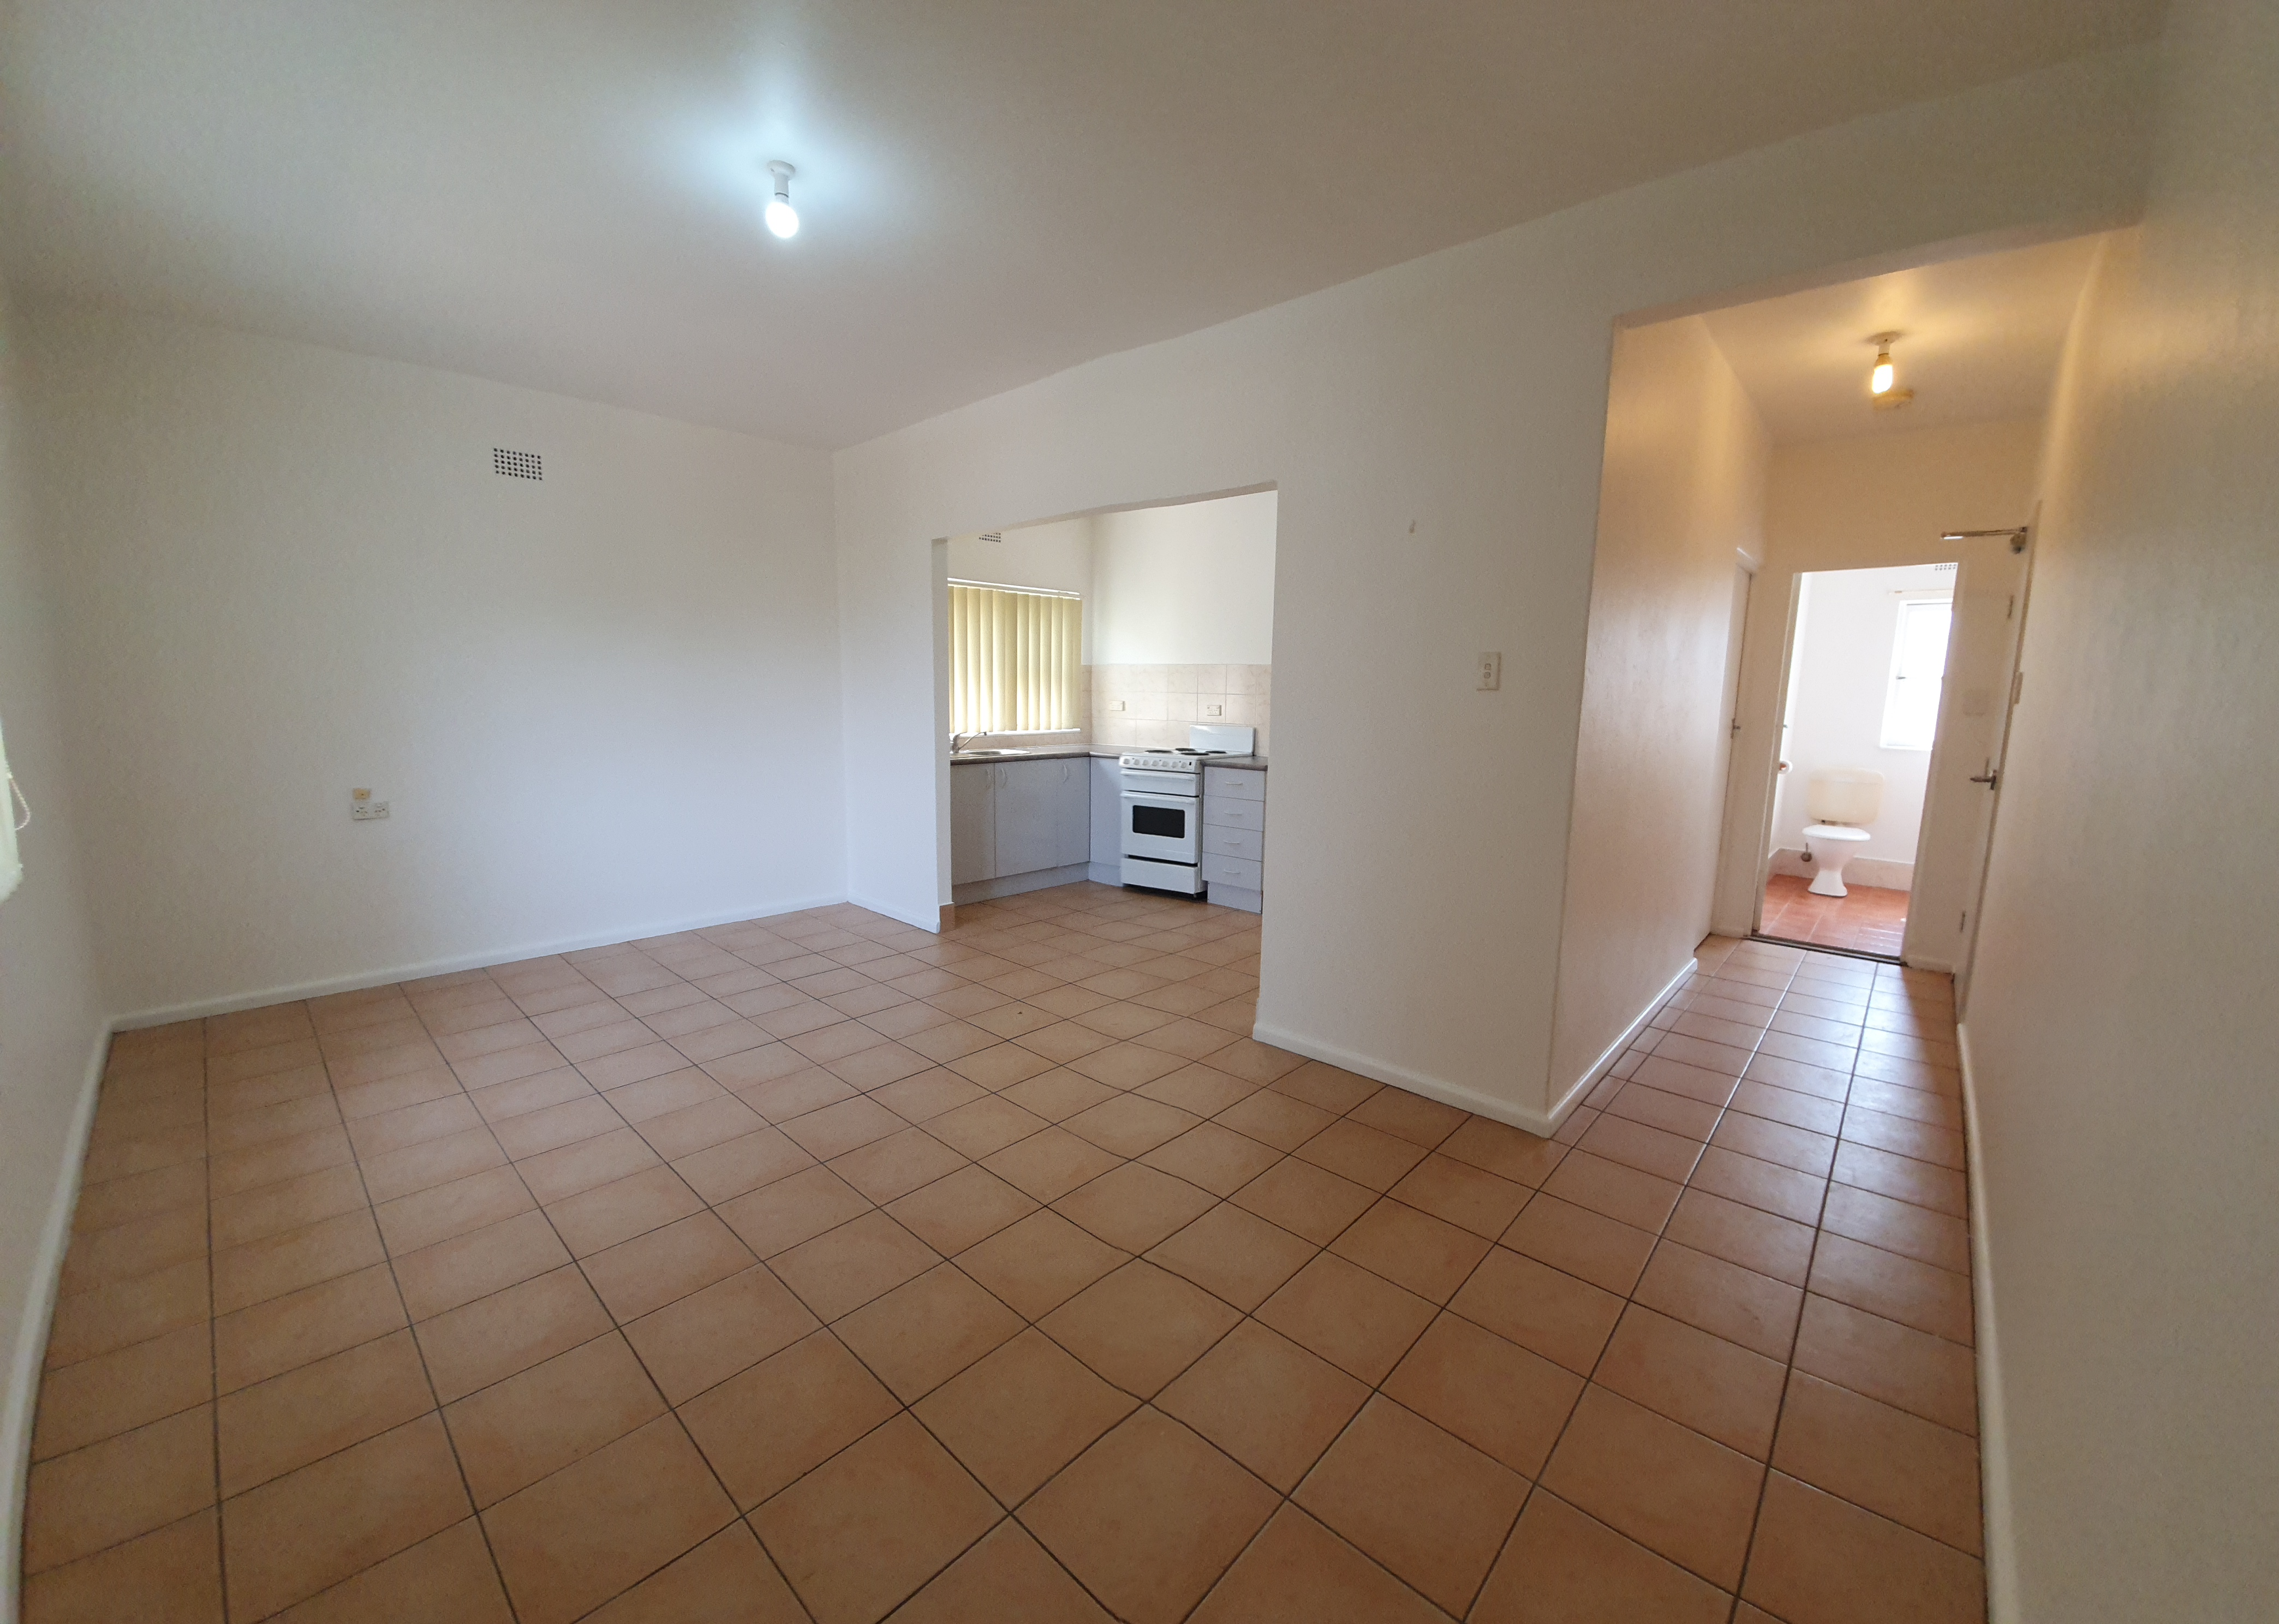 1 Bedroom Unit with Car Space (water usage included)